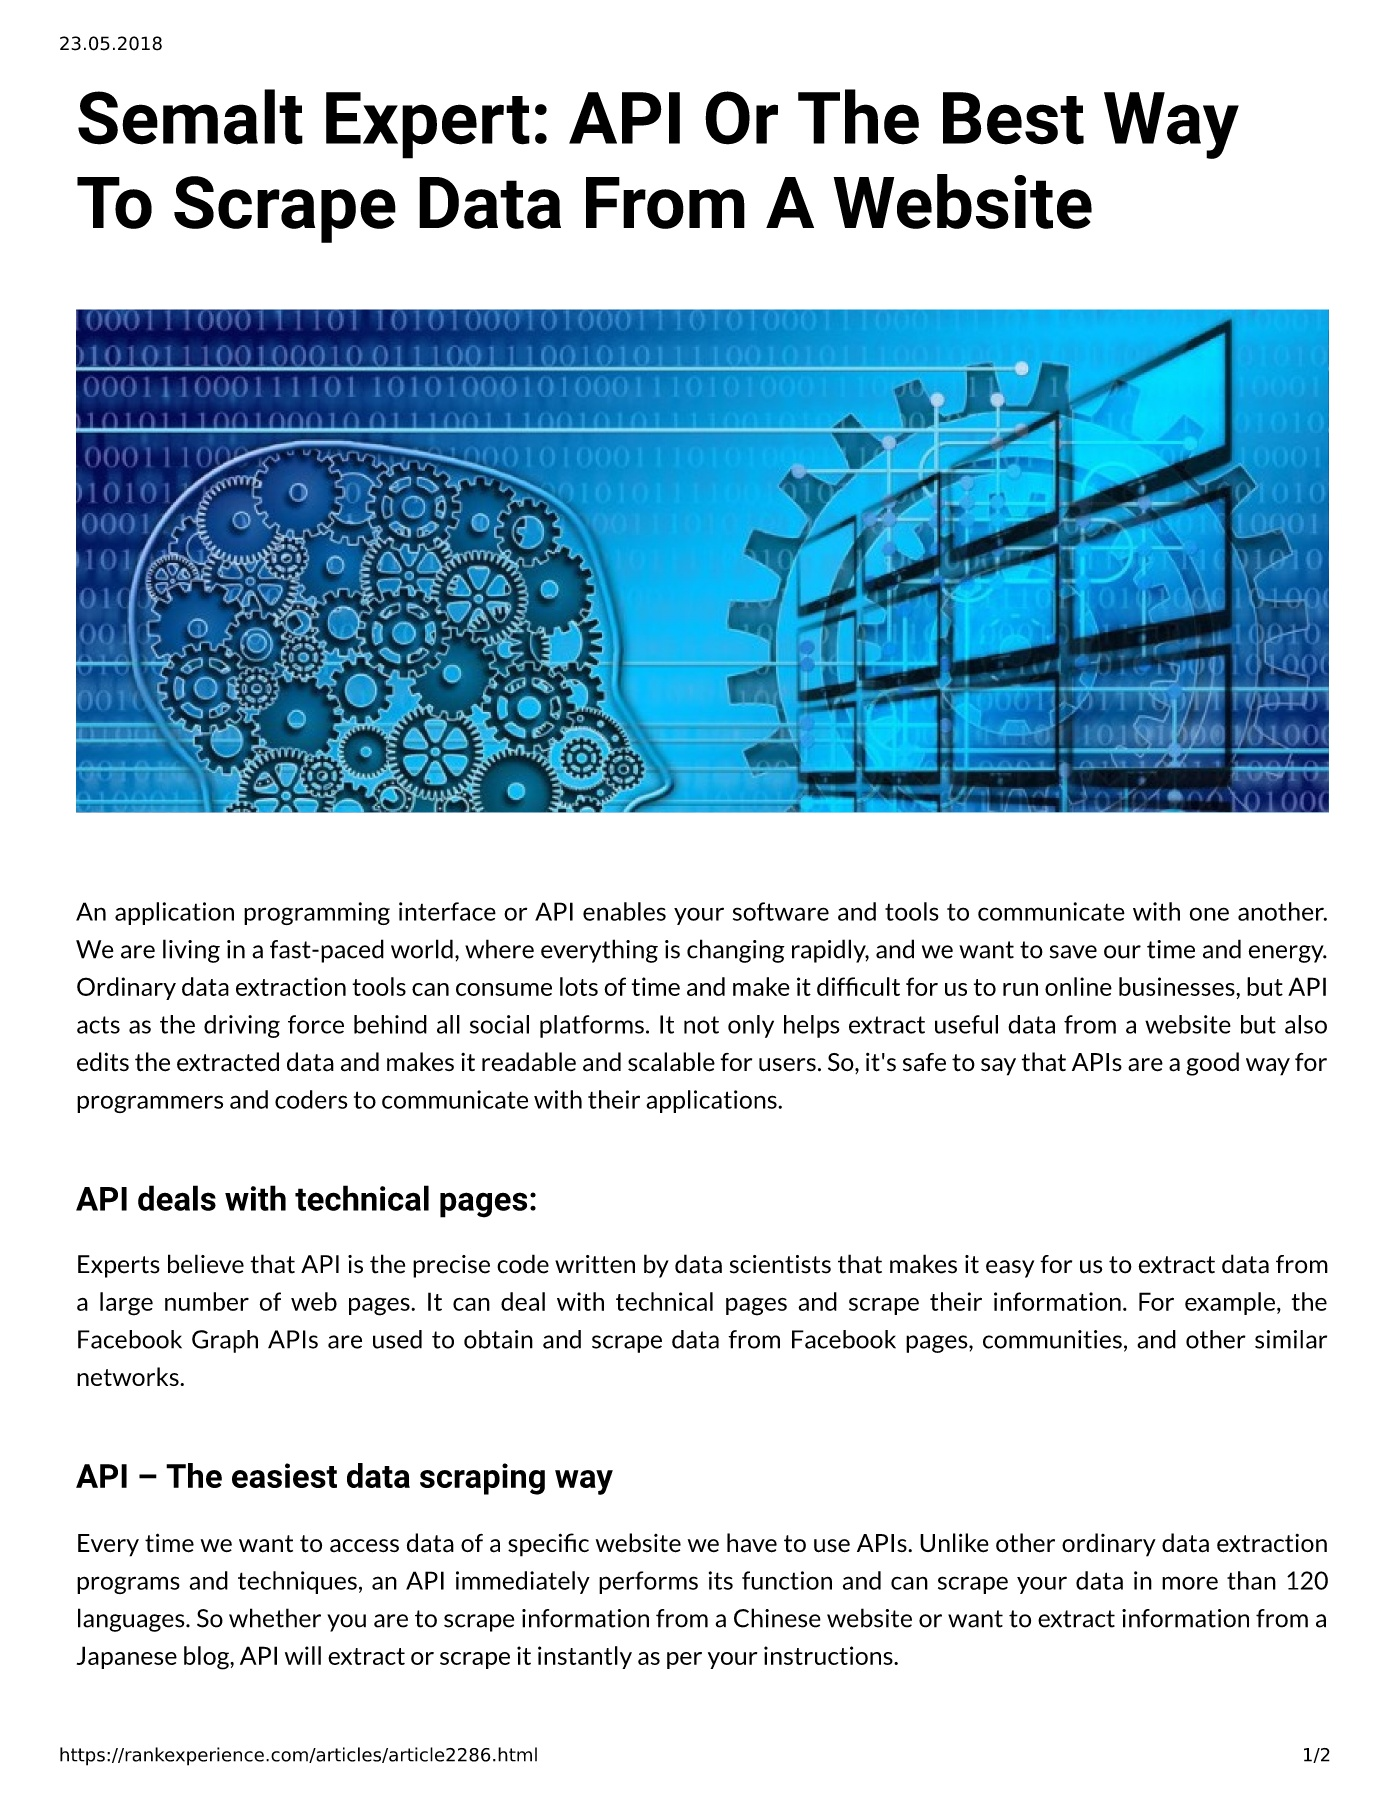 Semalt Expert: API Or The Best Way To Scrape Data From A